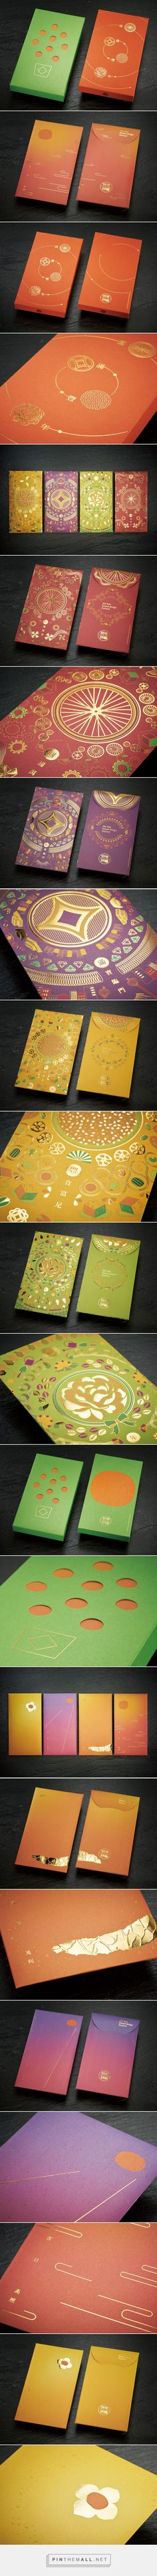 GIFTS for GOOD - 2017 Red Packets design by Box Brand Design - http://www.packagingoftheworld.com/2016/11/gifts-for-good-2017-red-packets.html